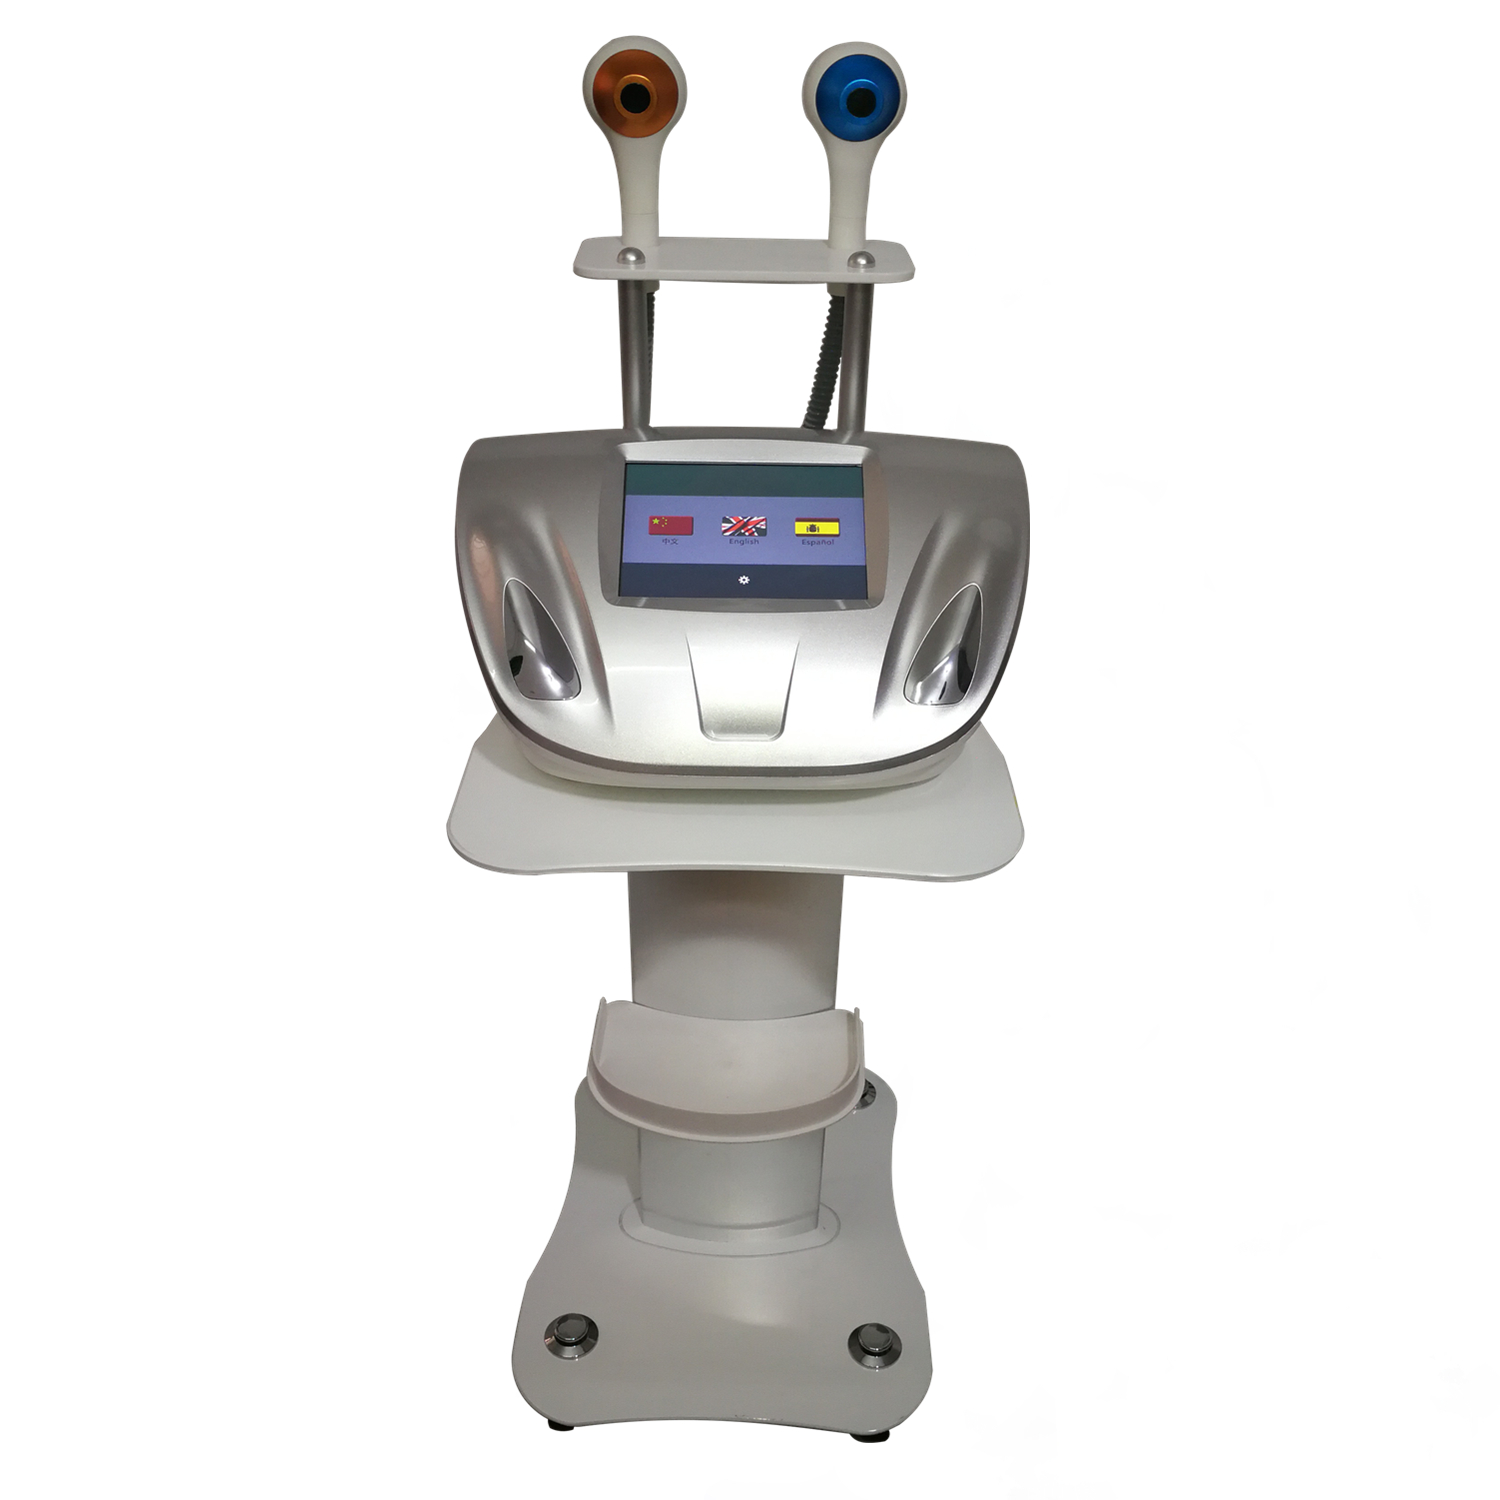 Most Effective Vmax Hifu Face Lift /Wrinkle Removal/Skin Tightening Beauty Machine